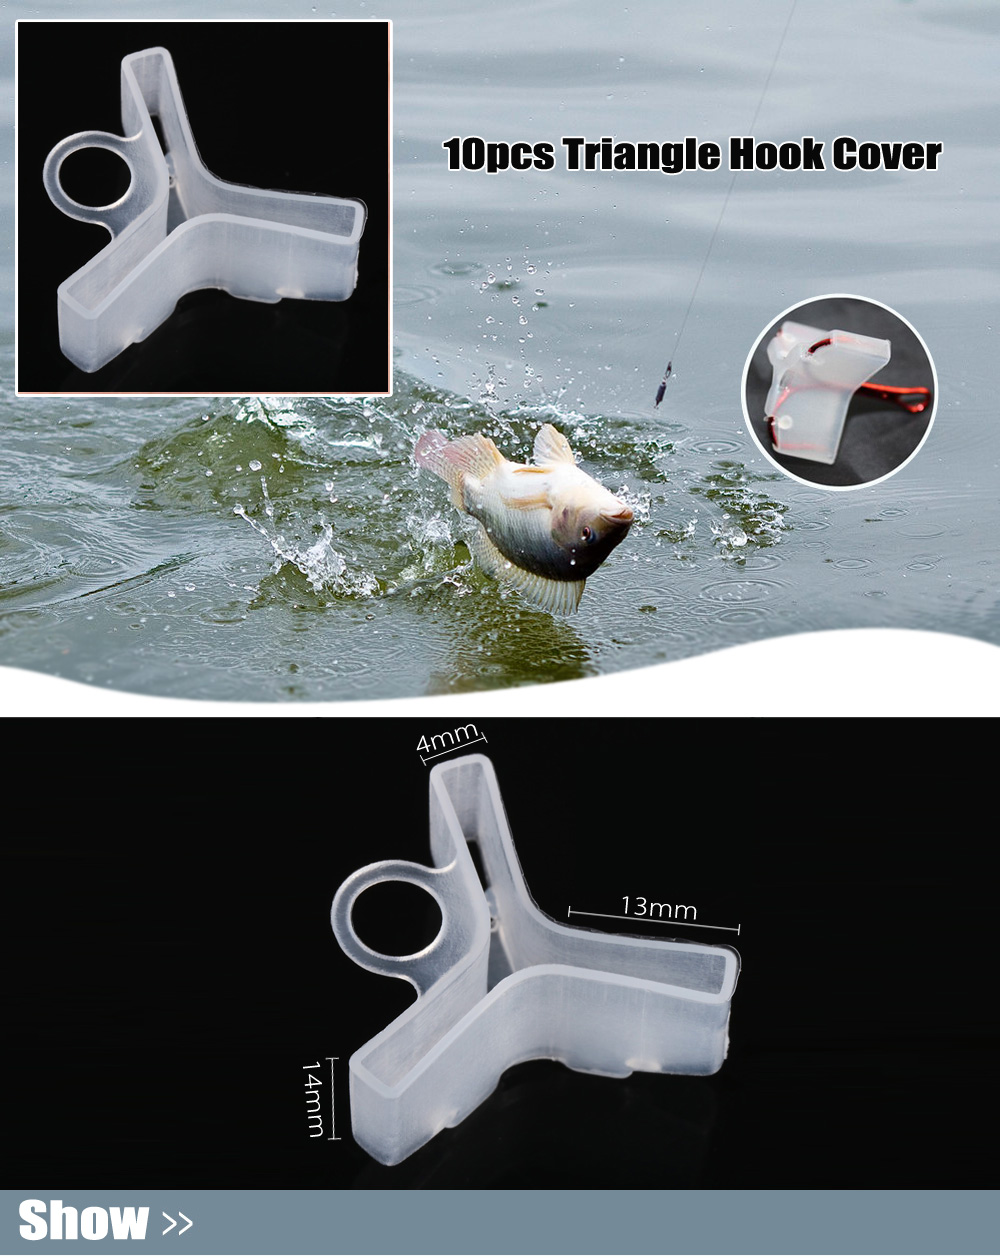 10pcs Fishing Triangle Hook Cover for No.1 / No.2 / No.3 Fishhook